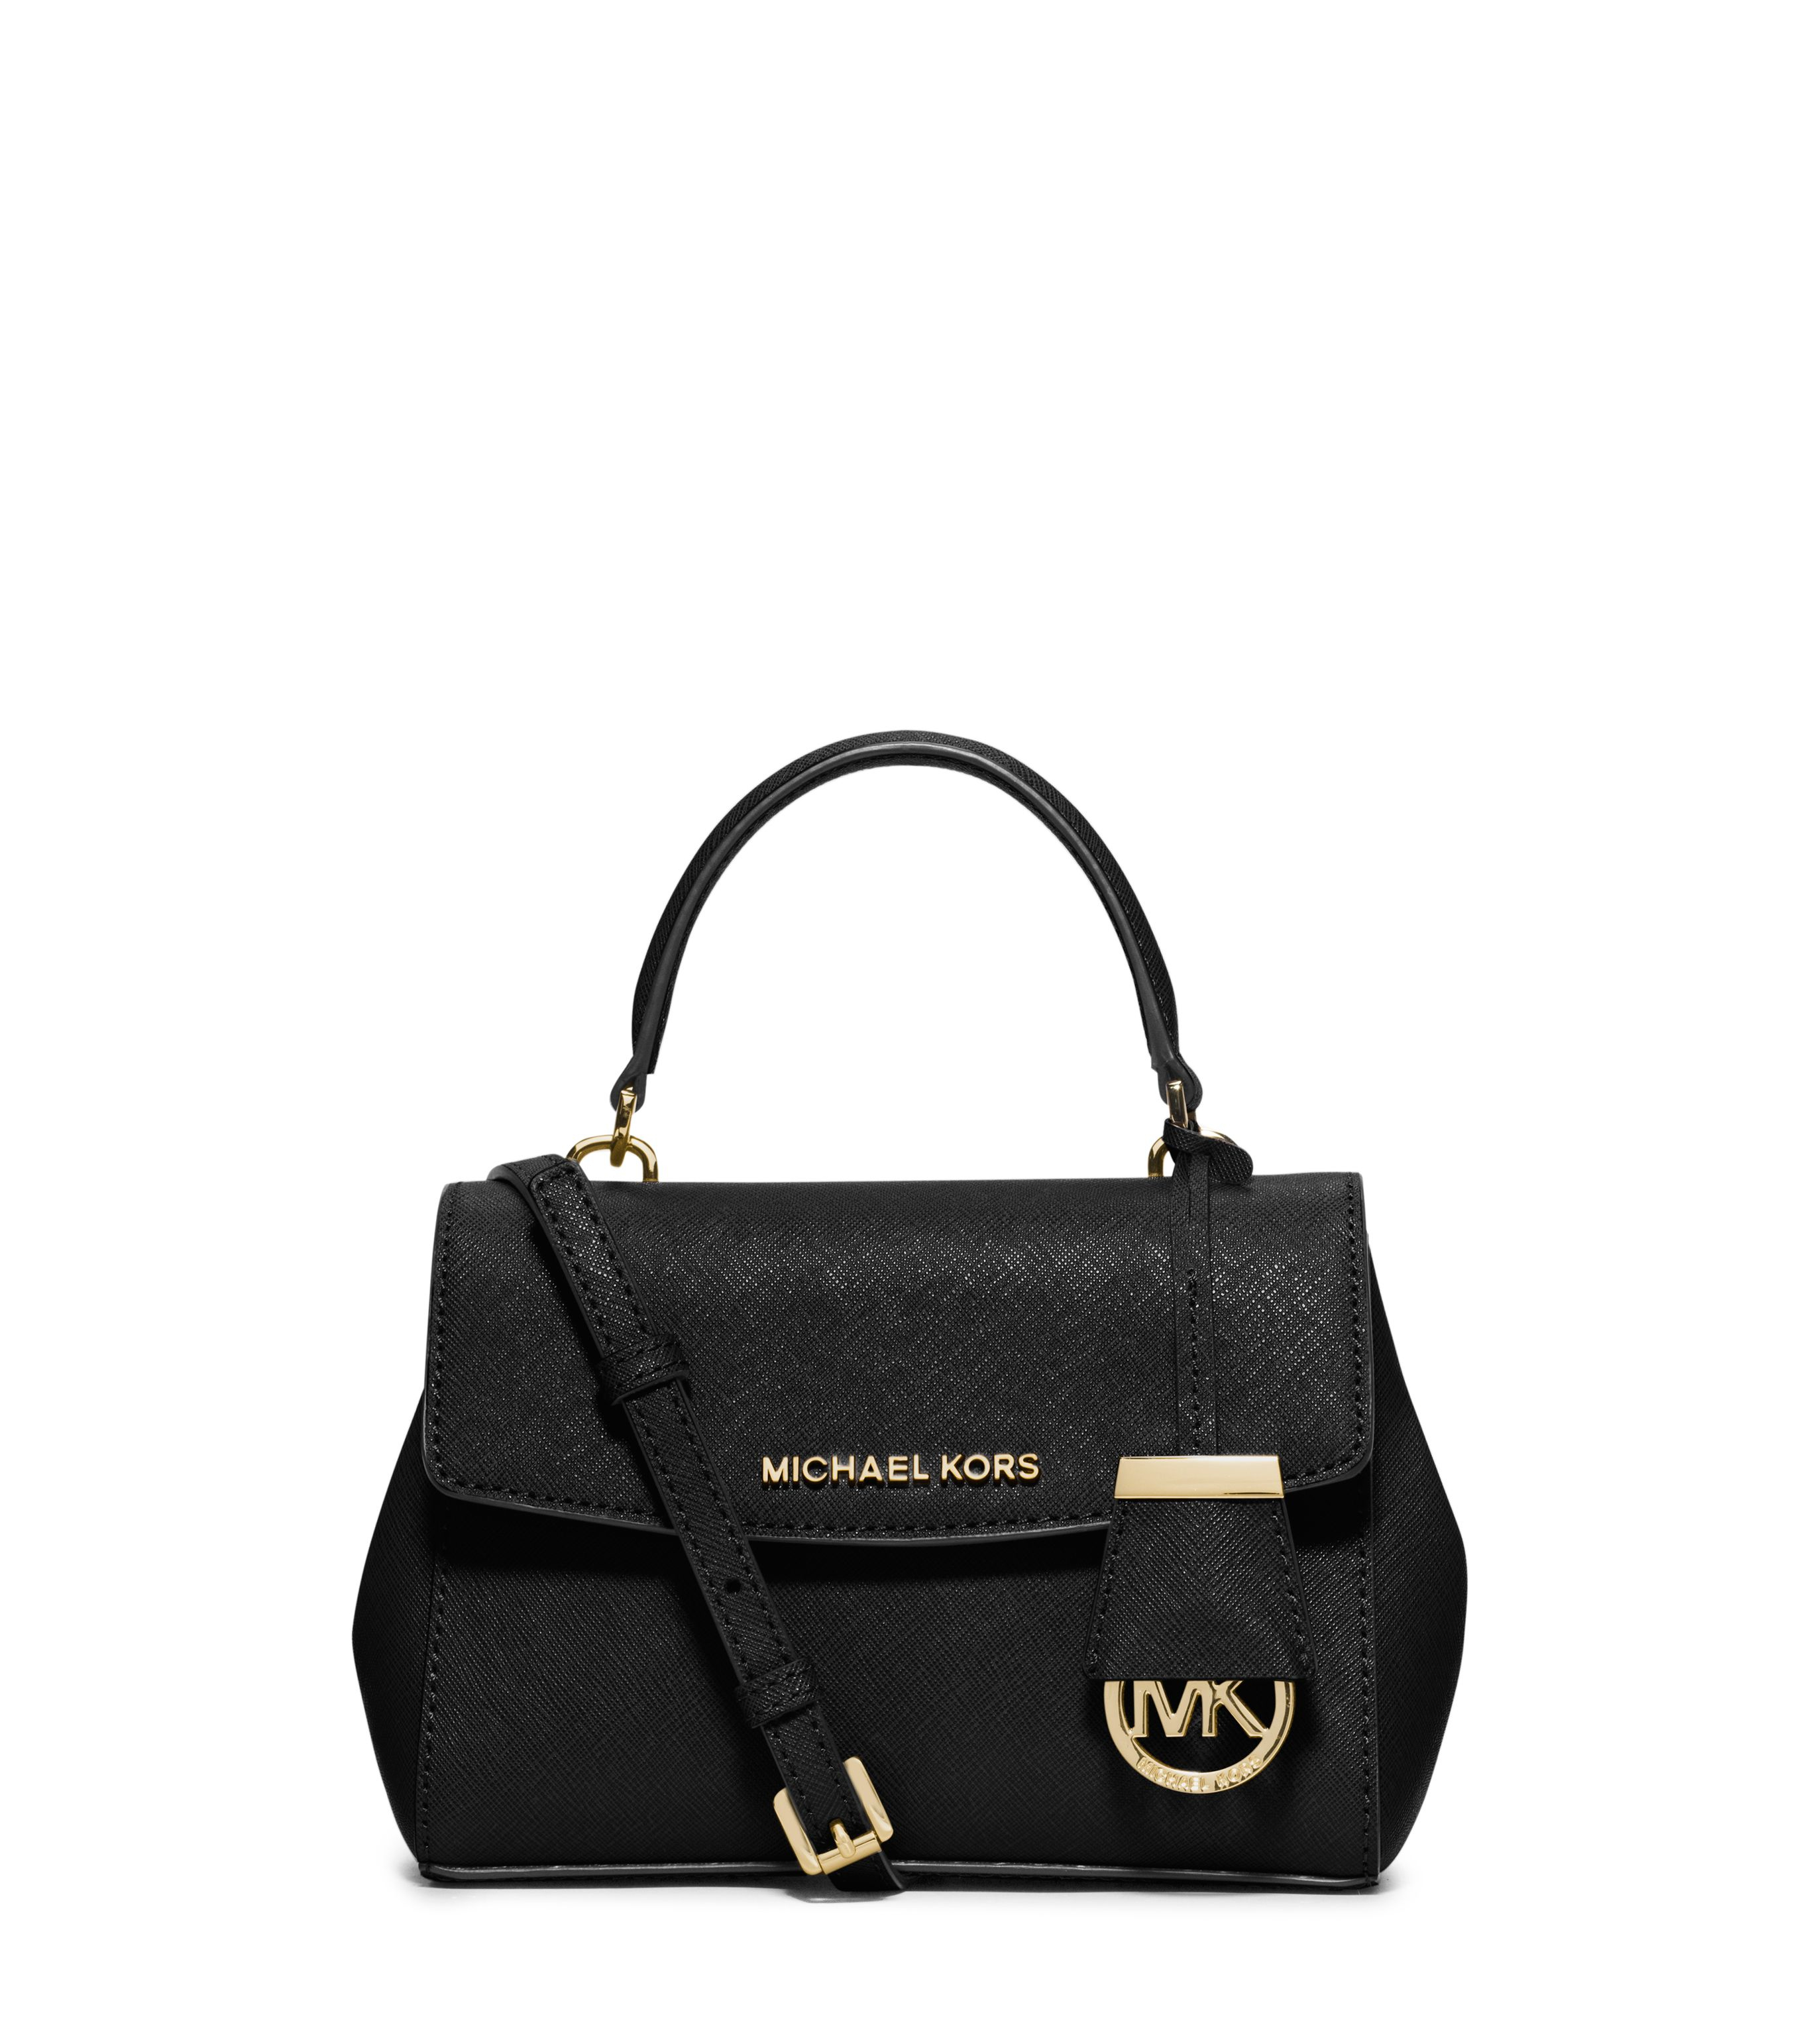 Michael Kors Ava Black Mini Satchel Bag In Black Lyst